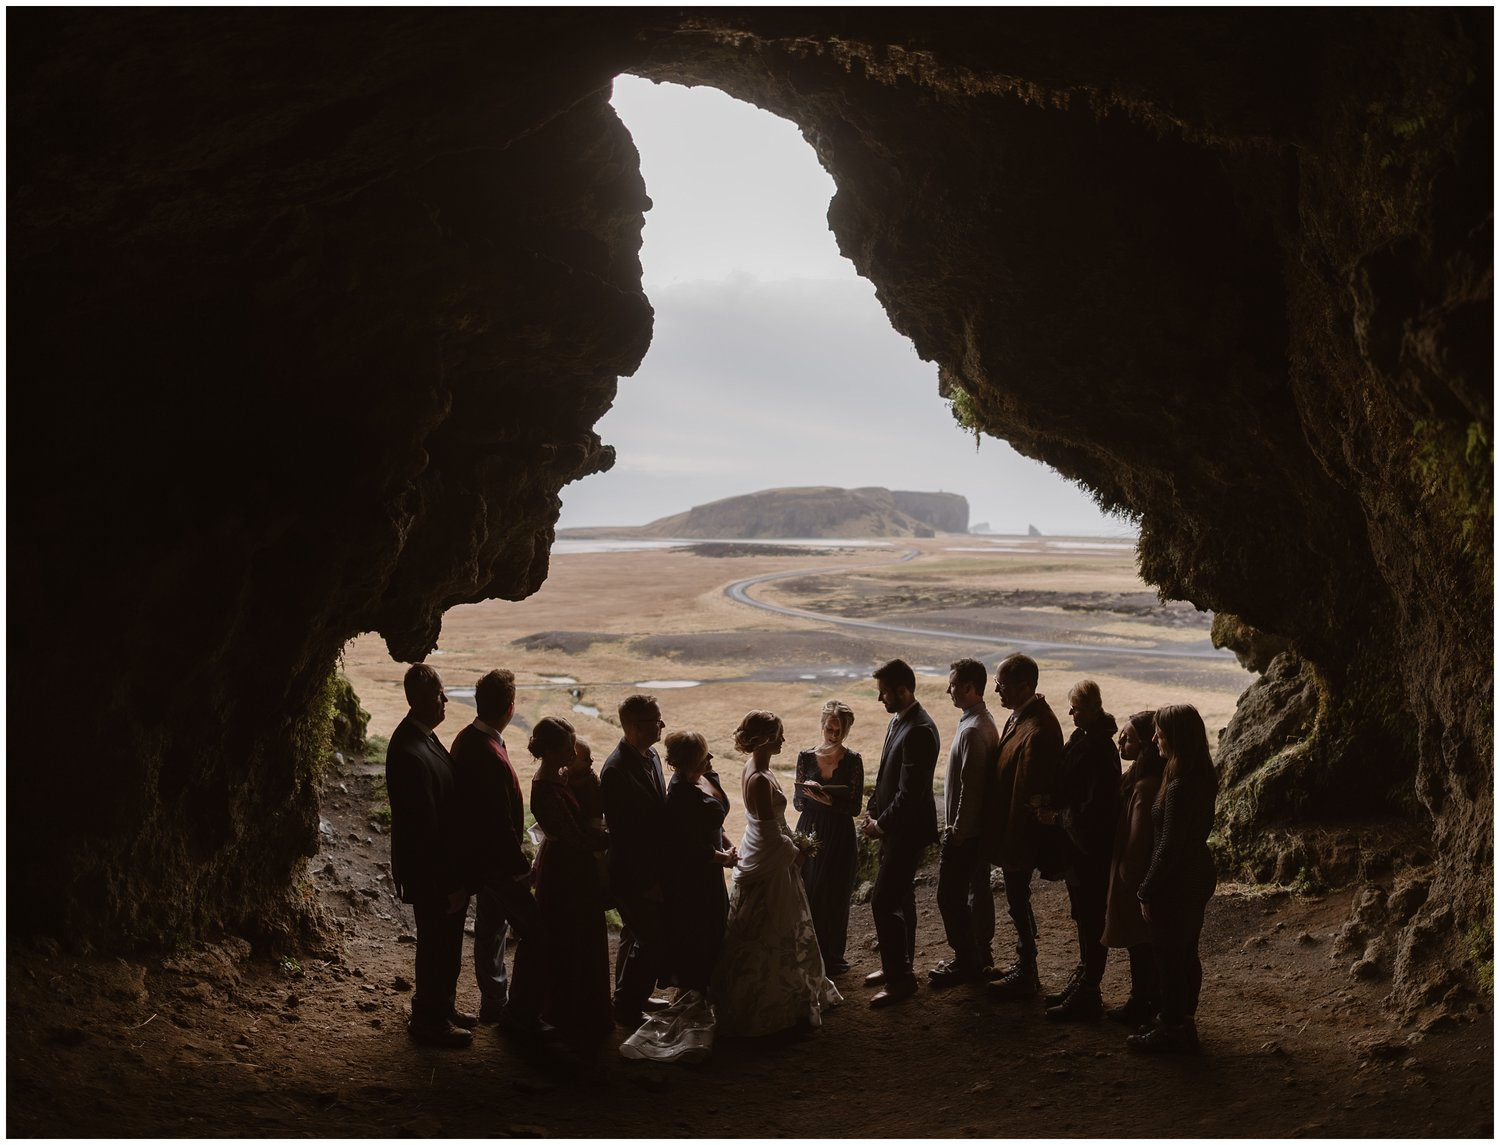 A bride and groom have their wedding ceremony with their loved ones standing by their side.